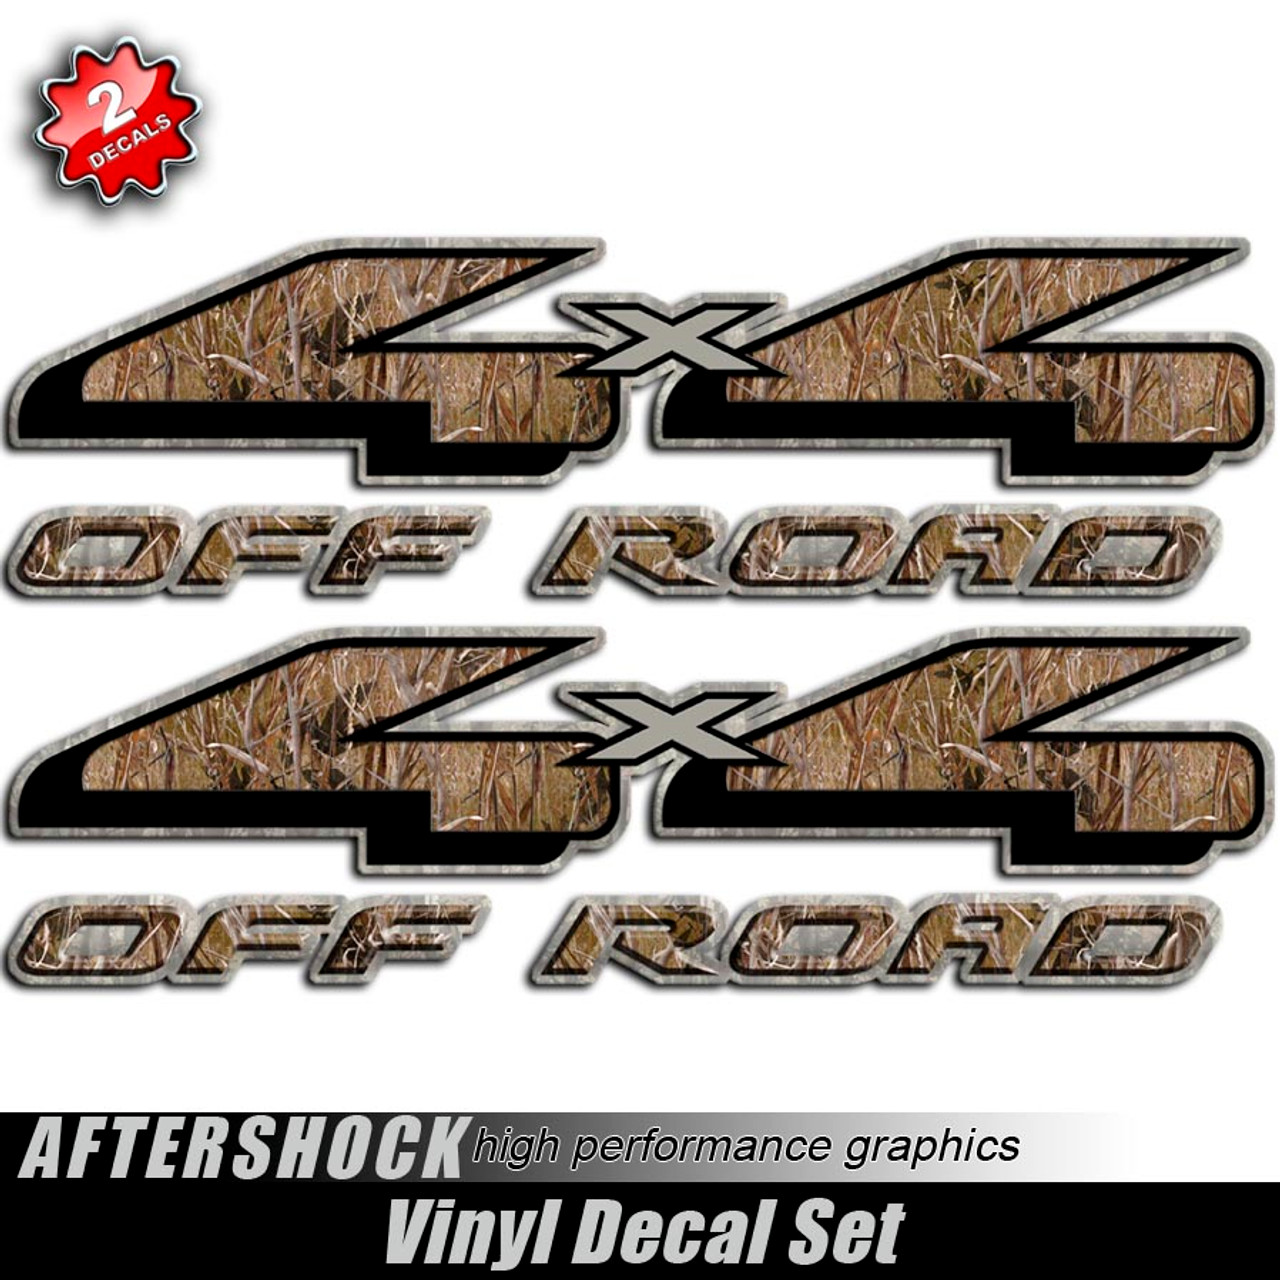 4x4 duck grass camo hunting decals